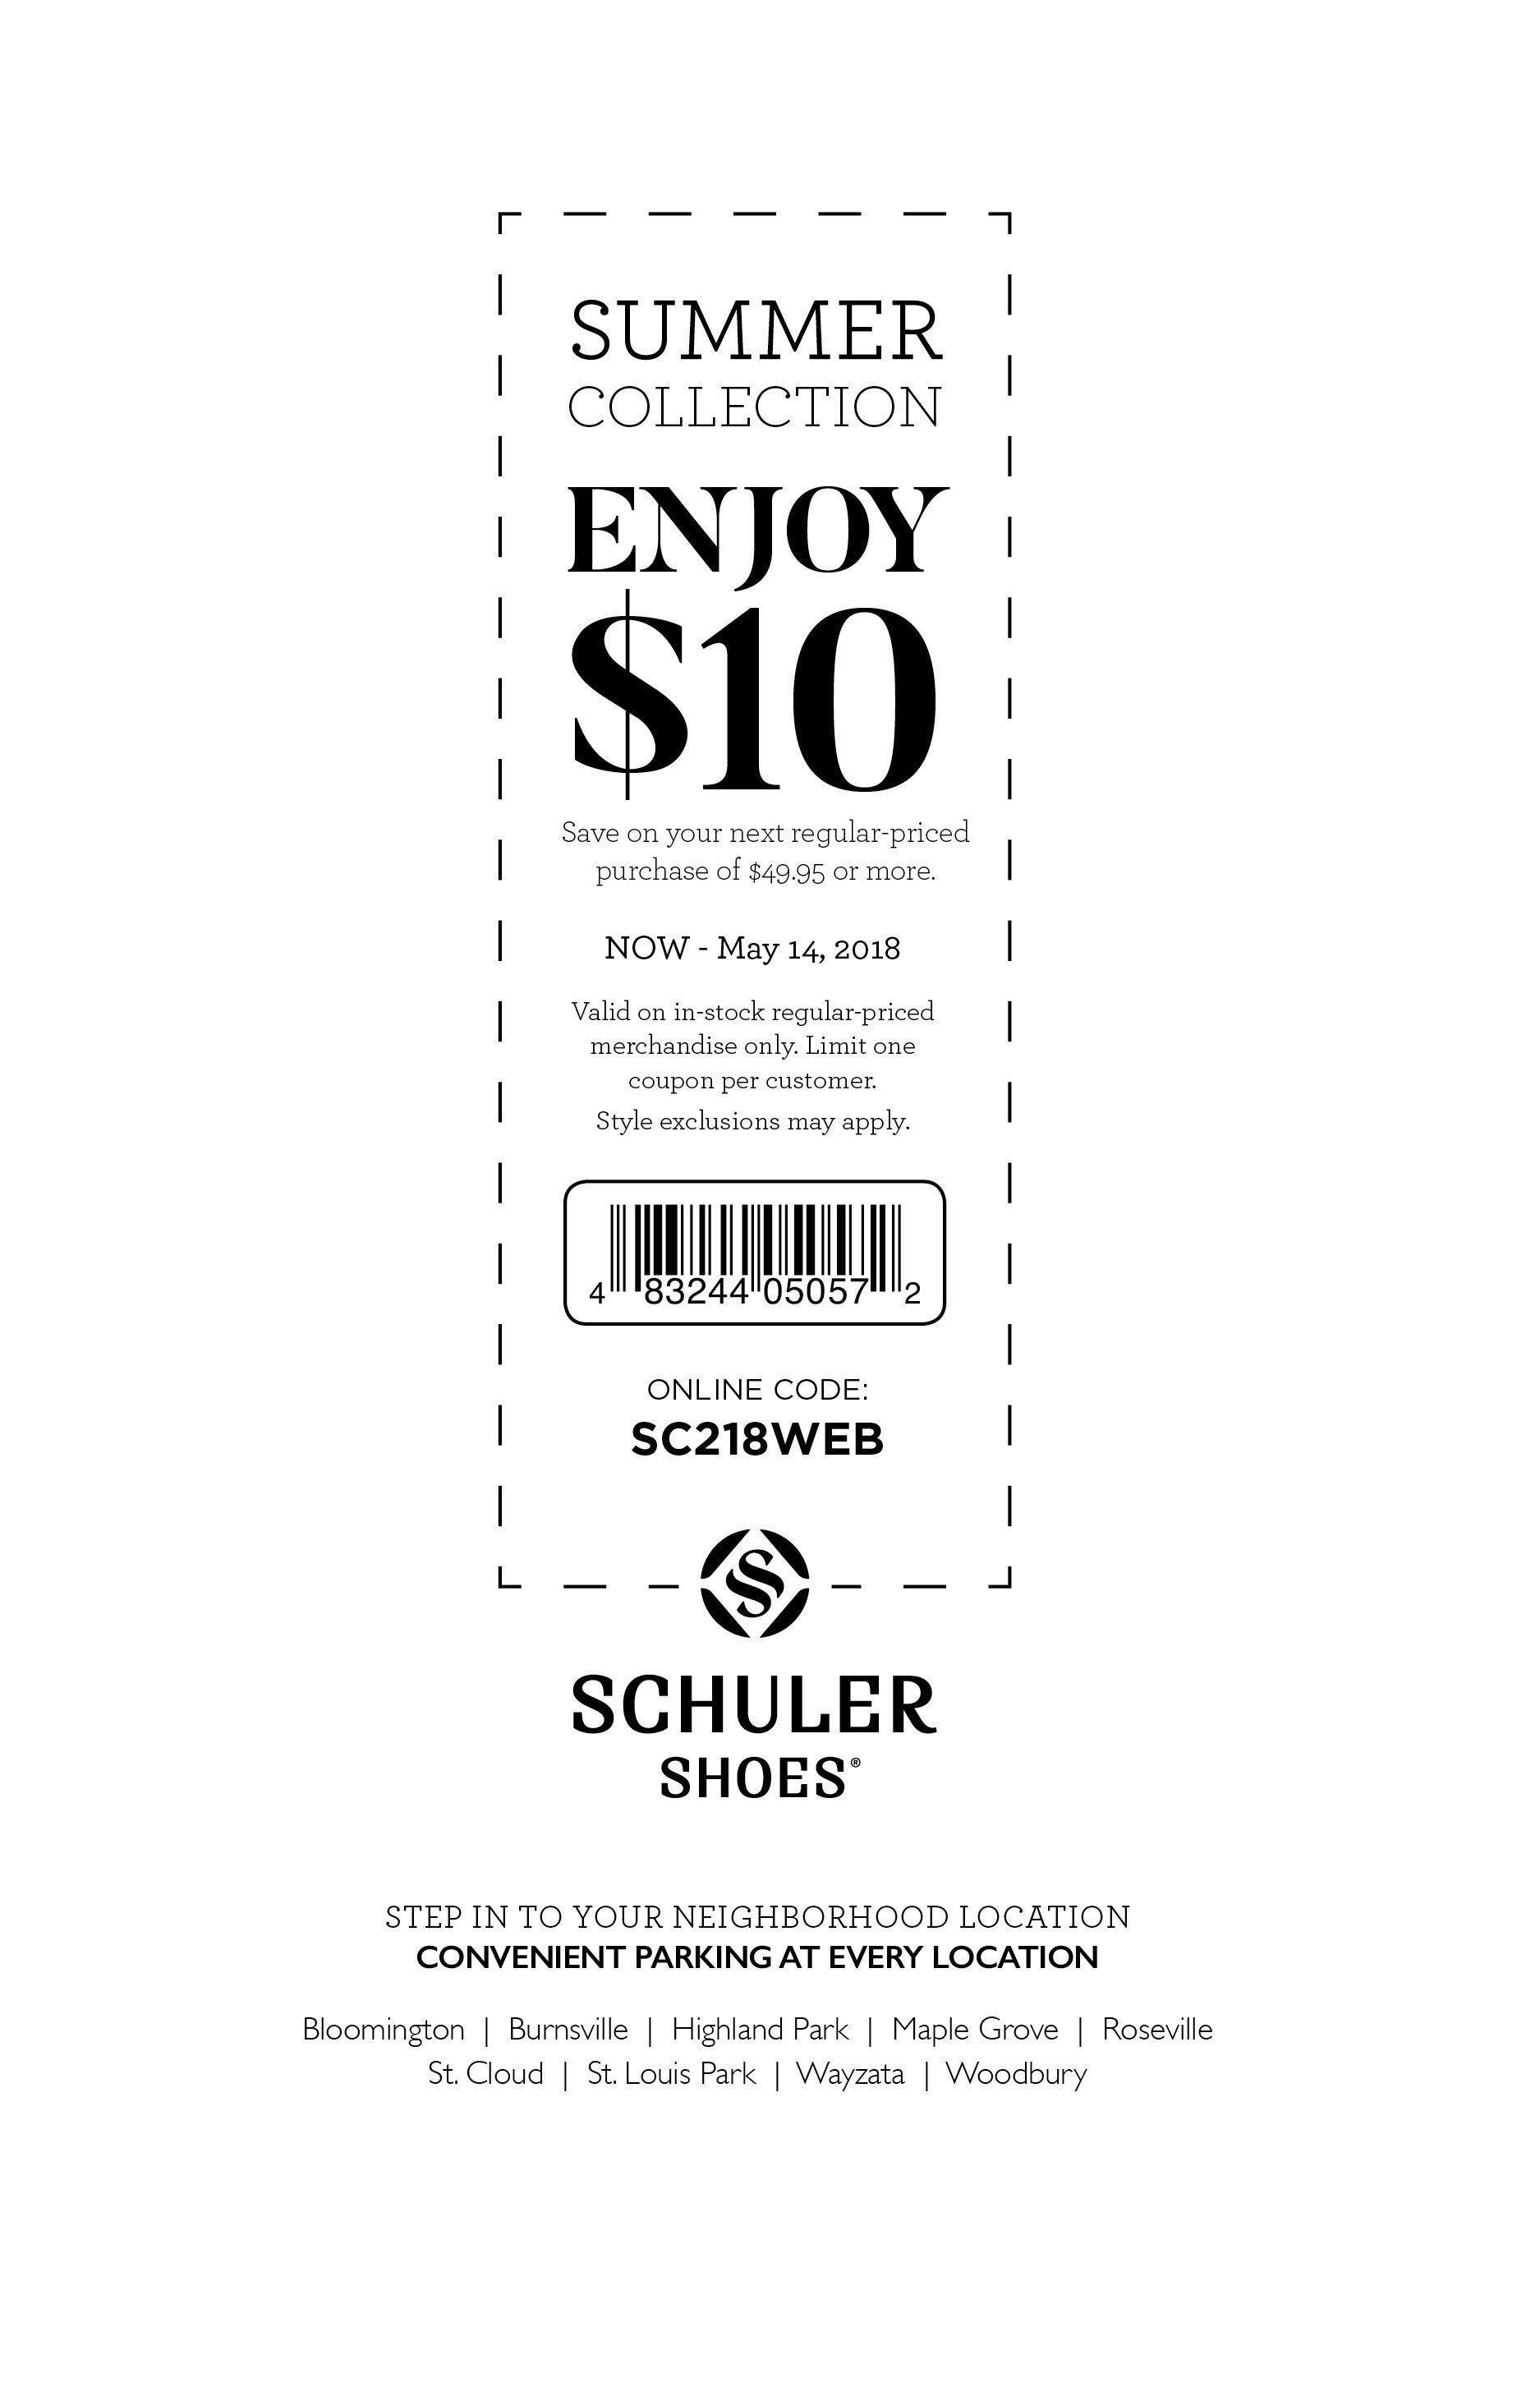 schuler shoes online coupon code